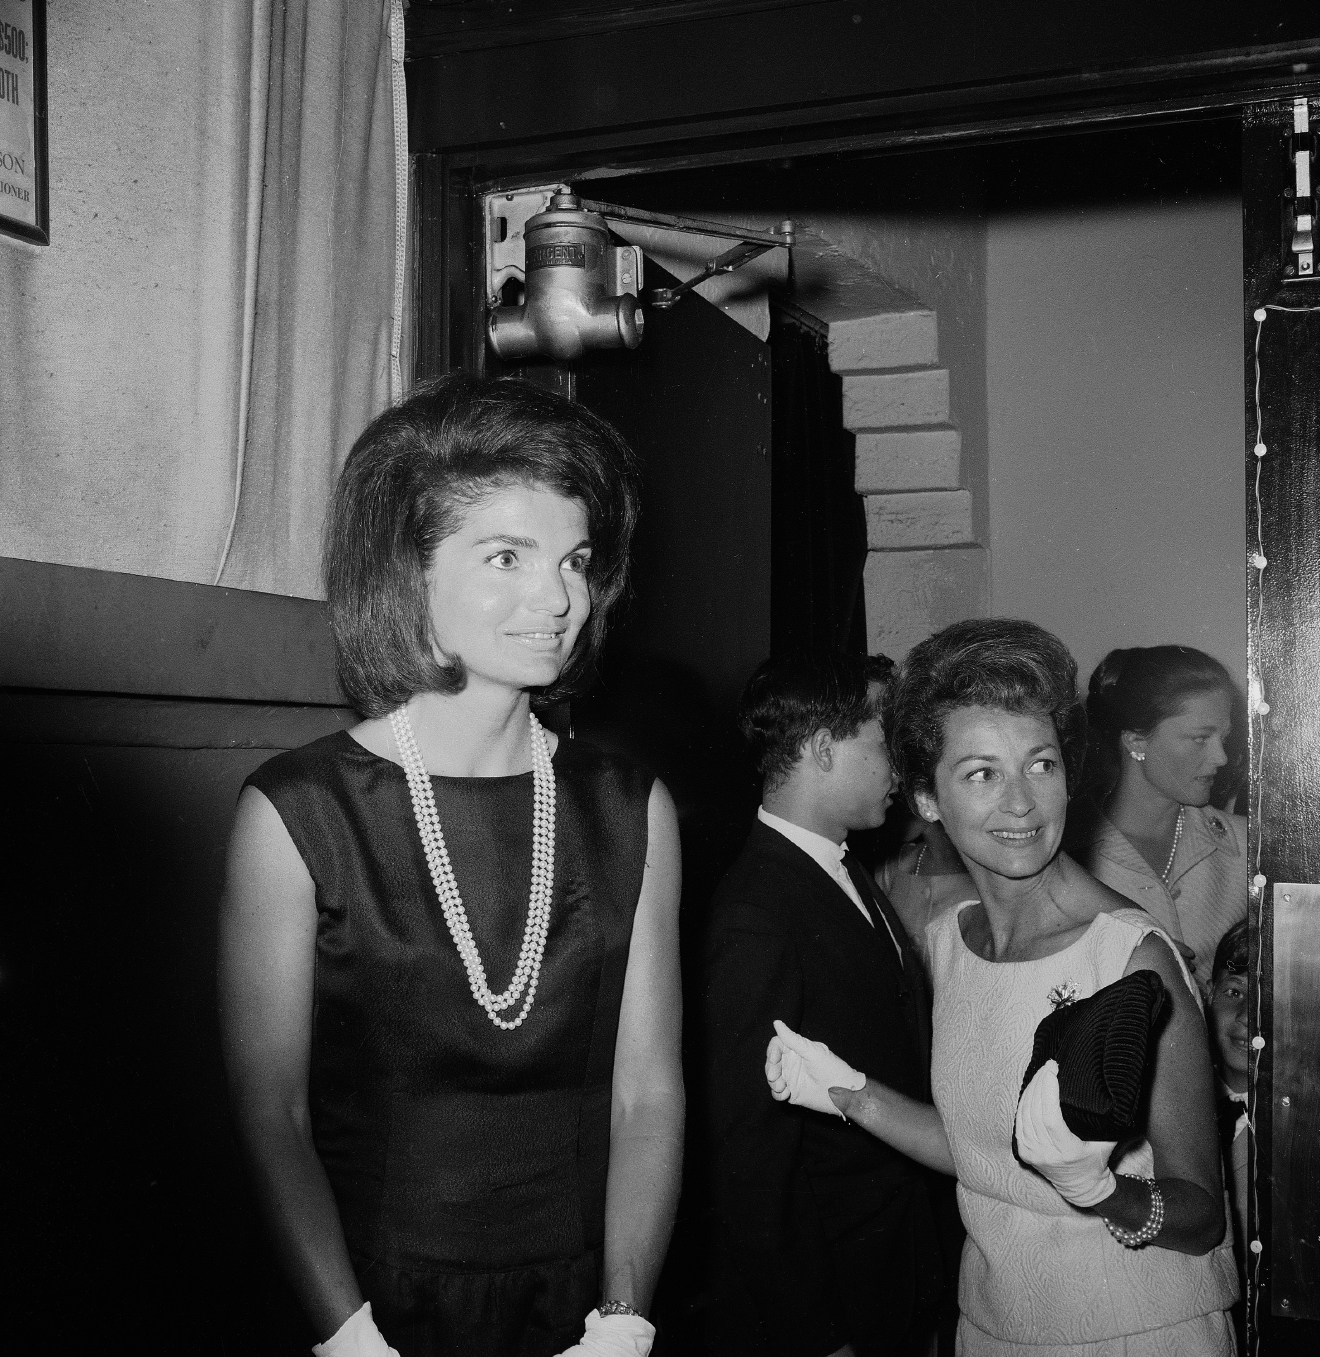 Former first lady Jacqueline Kennedy enters the Theater de Lys in New York's Greenwich Village for a musical performance of Leonard Bernstein songs, July 28, 1965. Others are unidentified.  (AP Photo/John Lent)